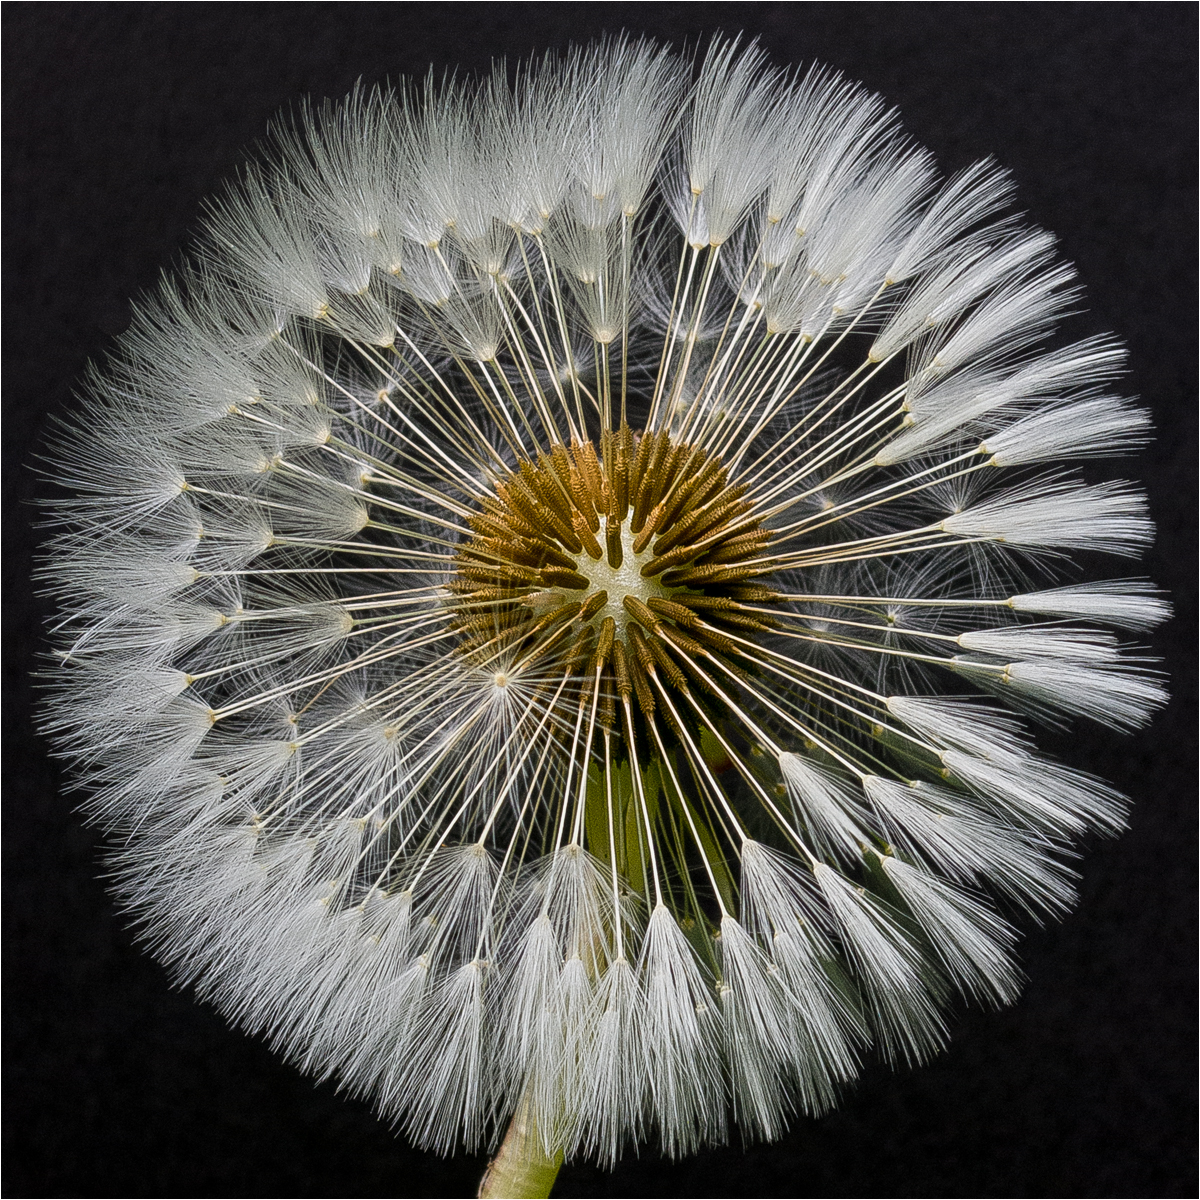 Emerging Dandelion by Mike Pockney